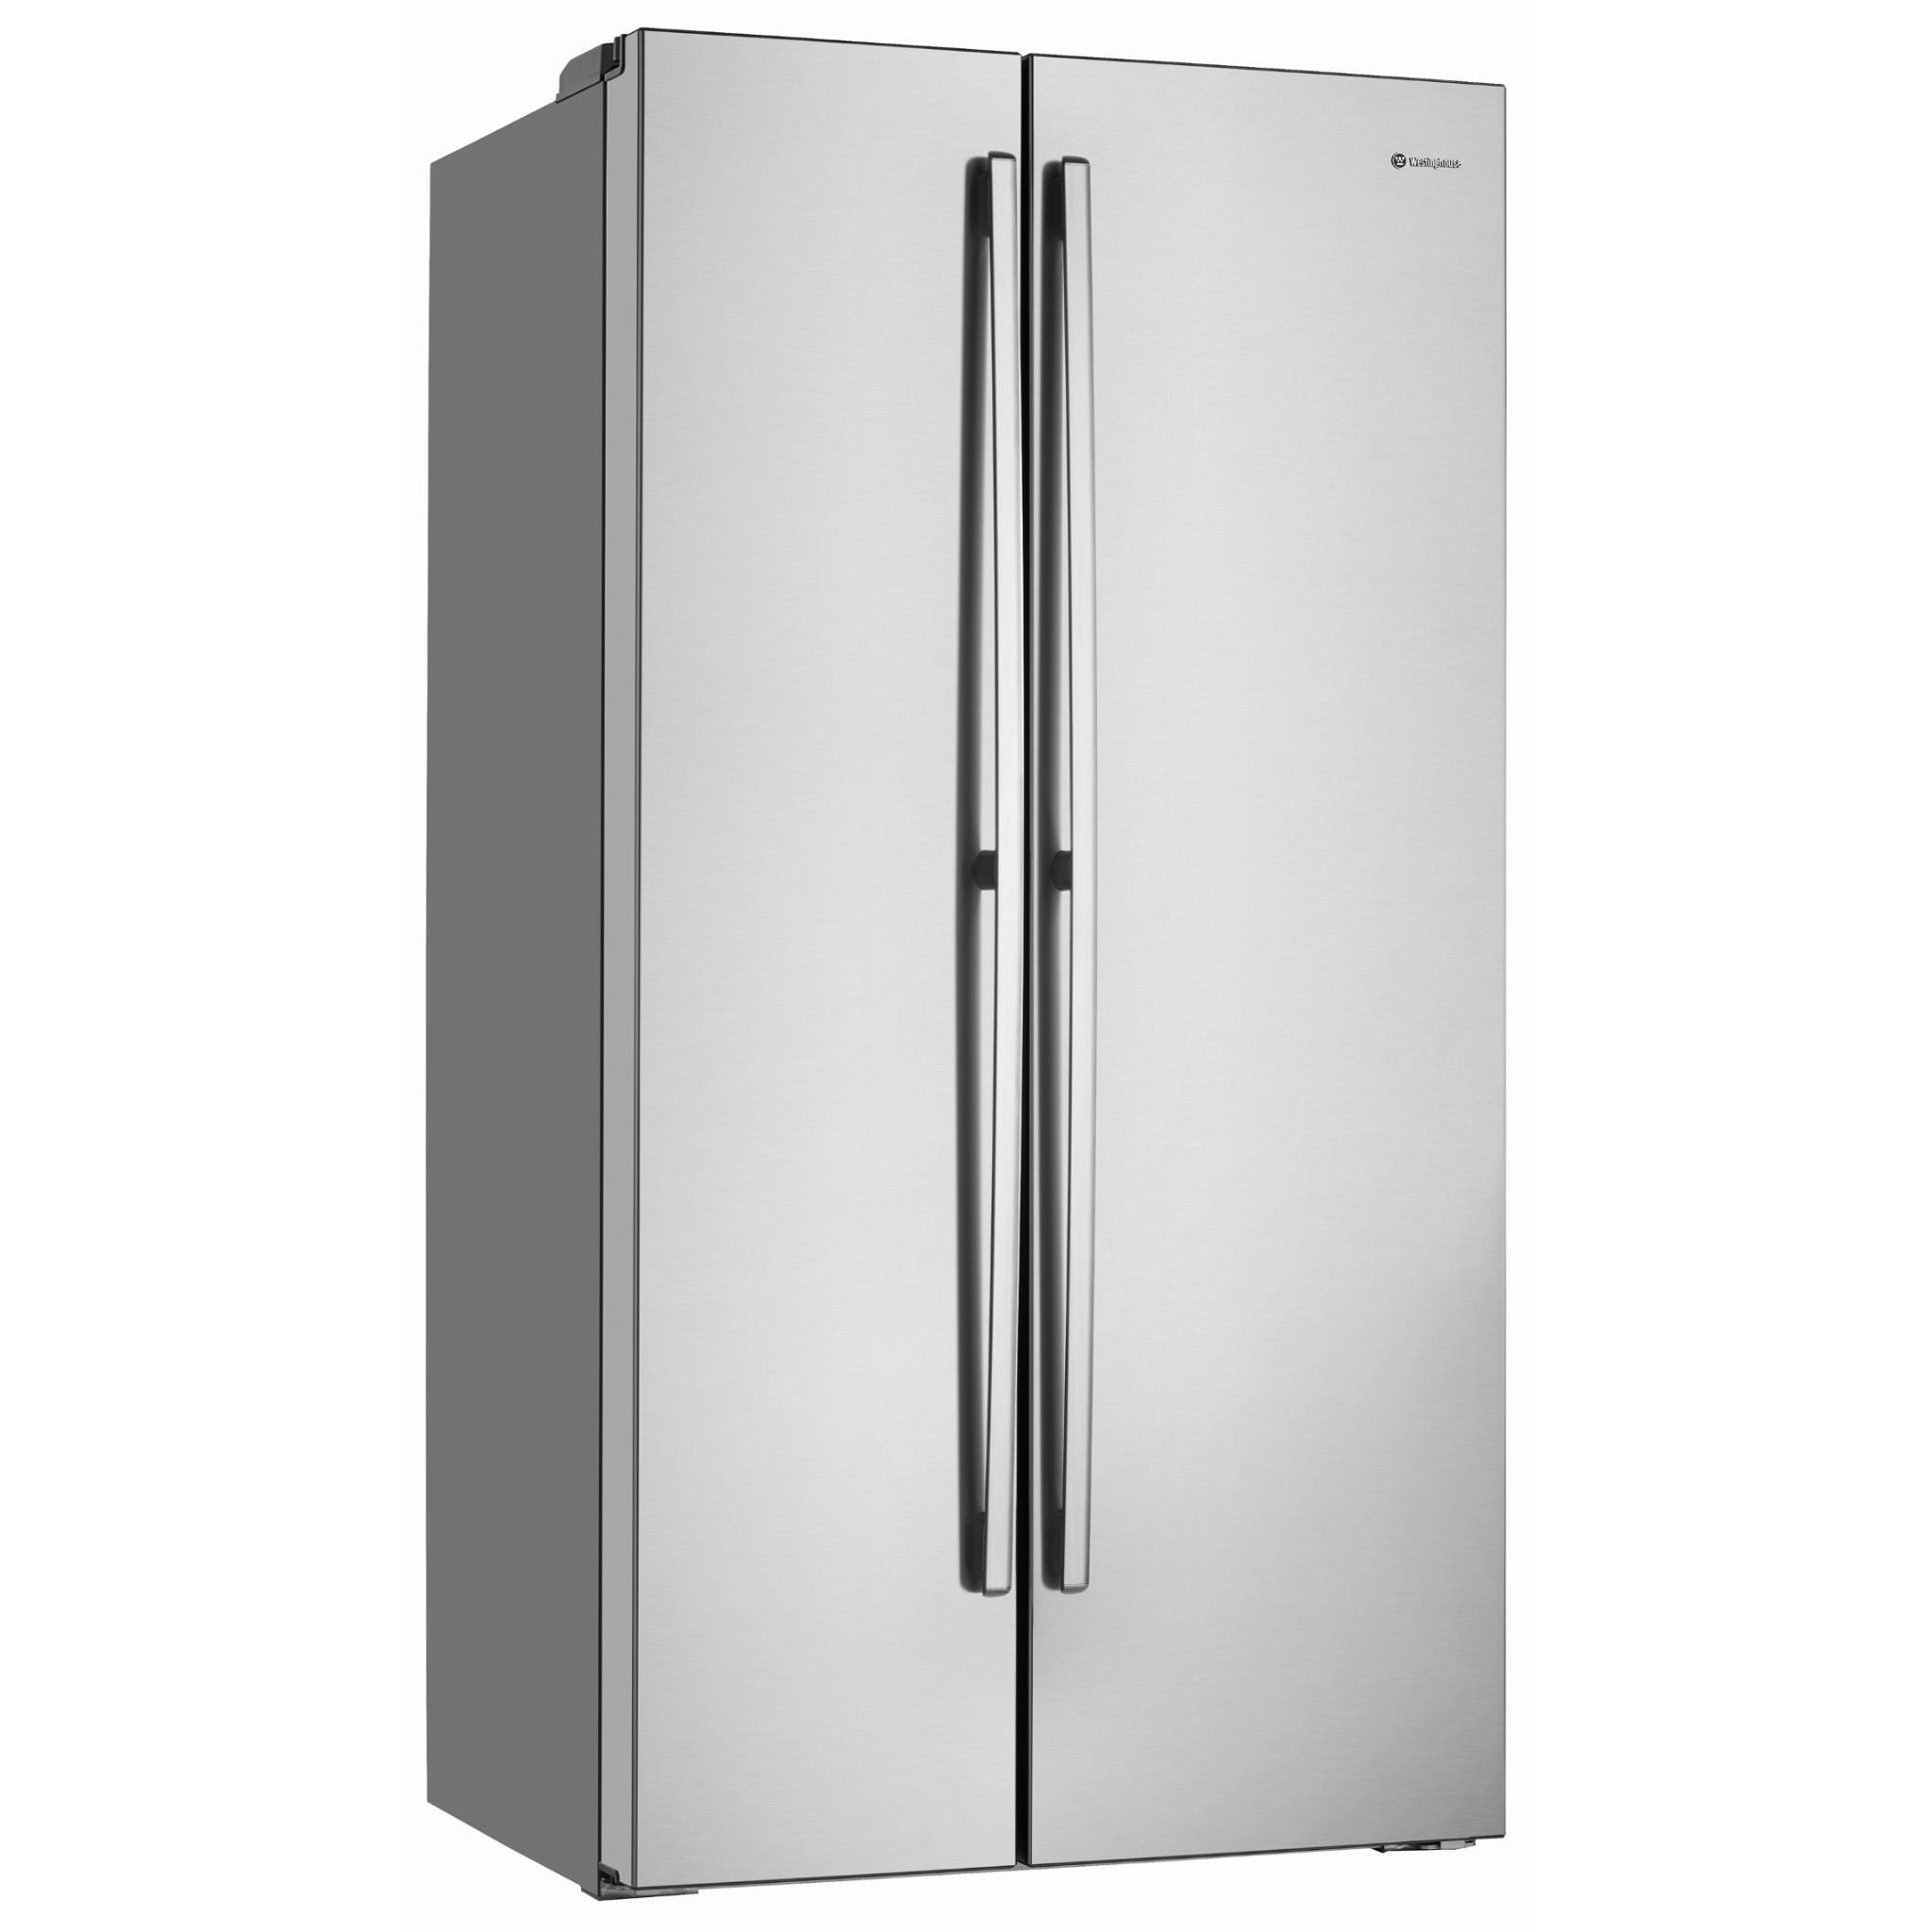 Westinghouse WSE6200SA 620L Side by Side Fridge (S/Steel)